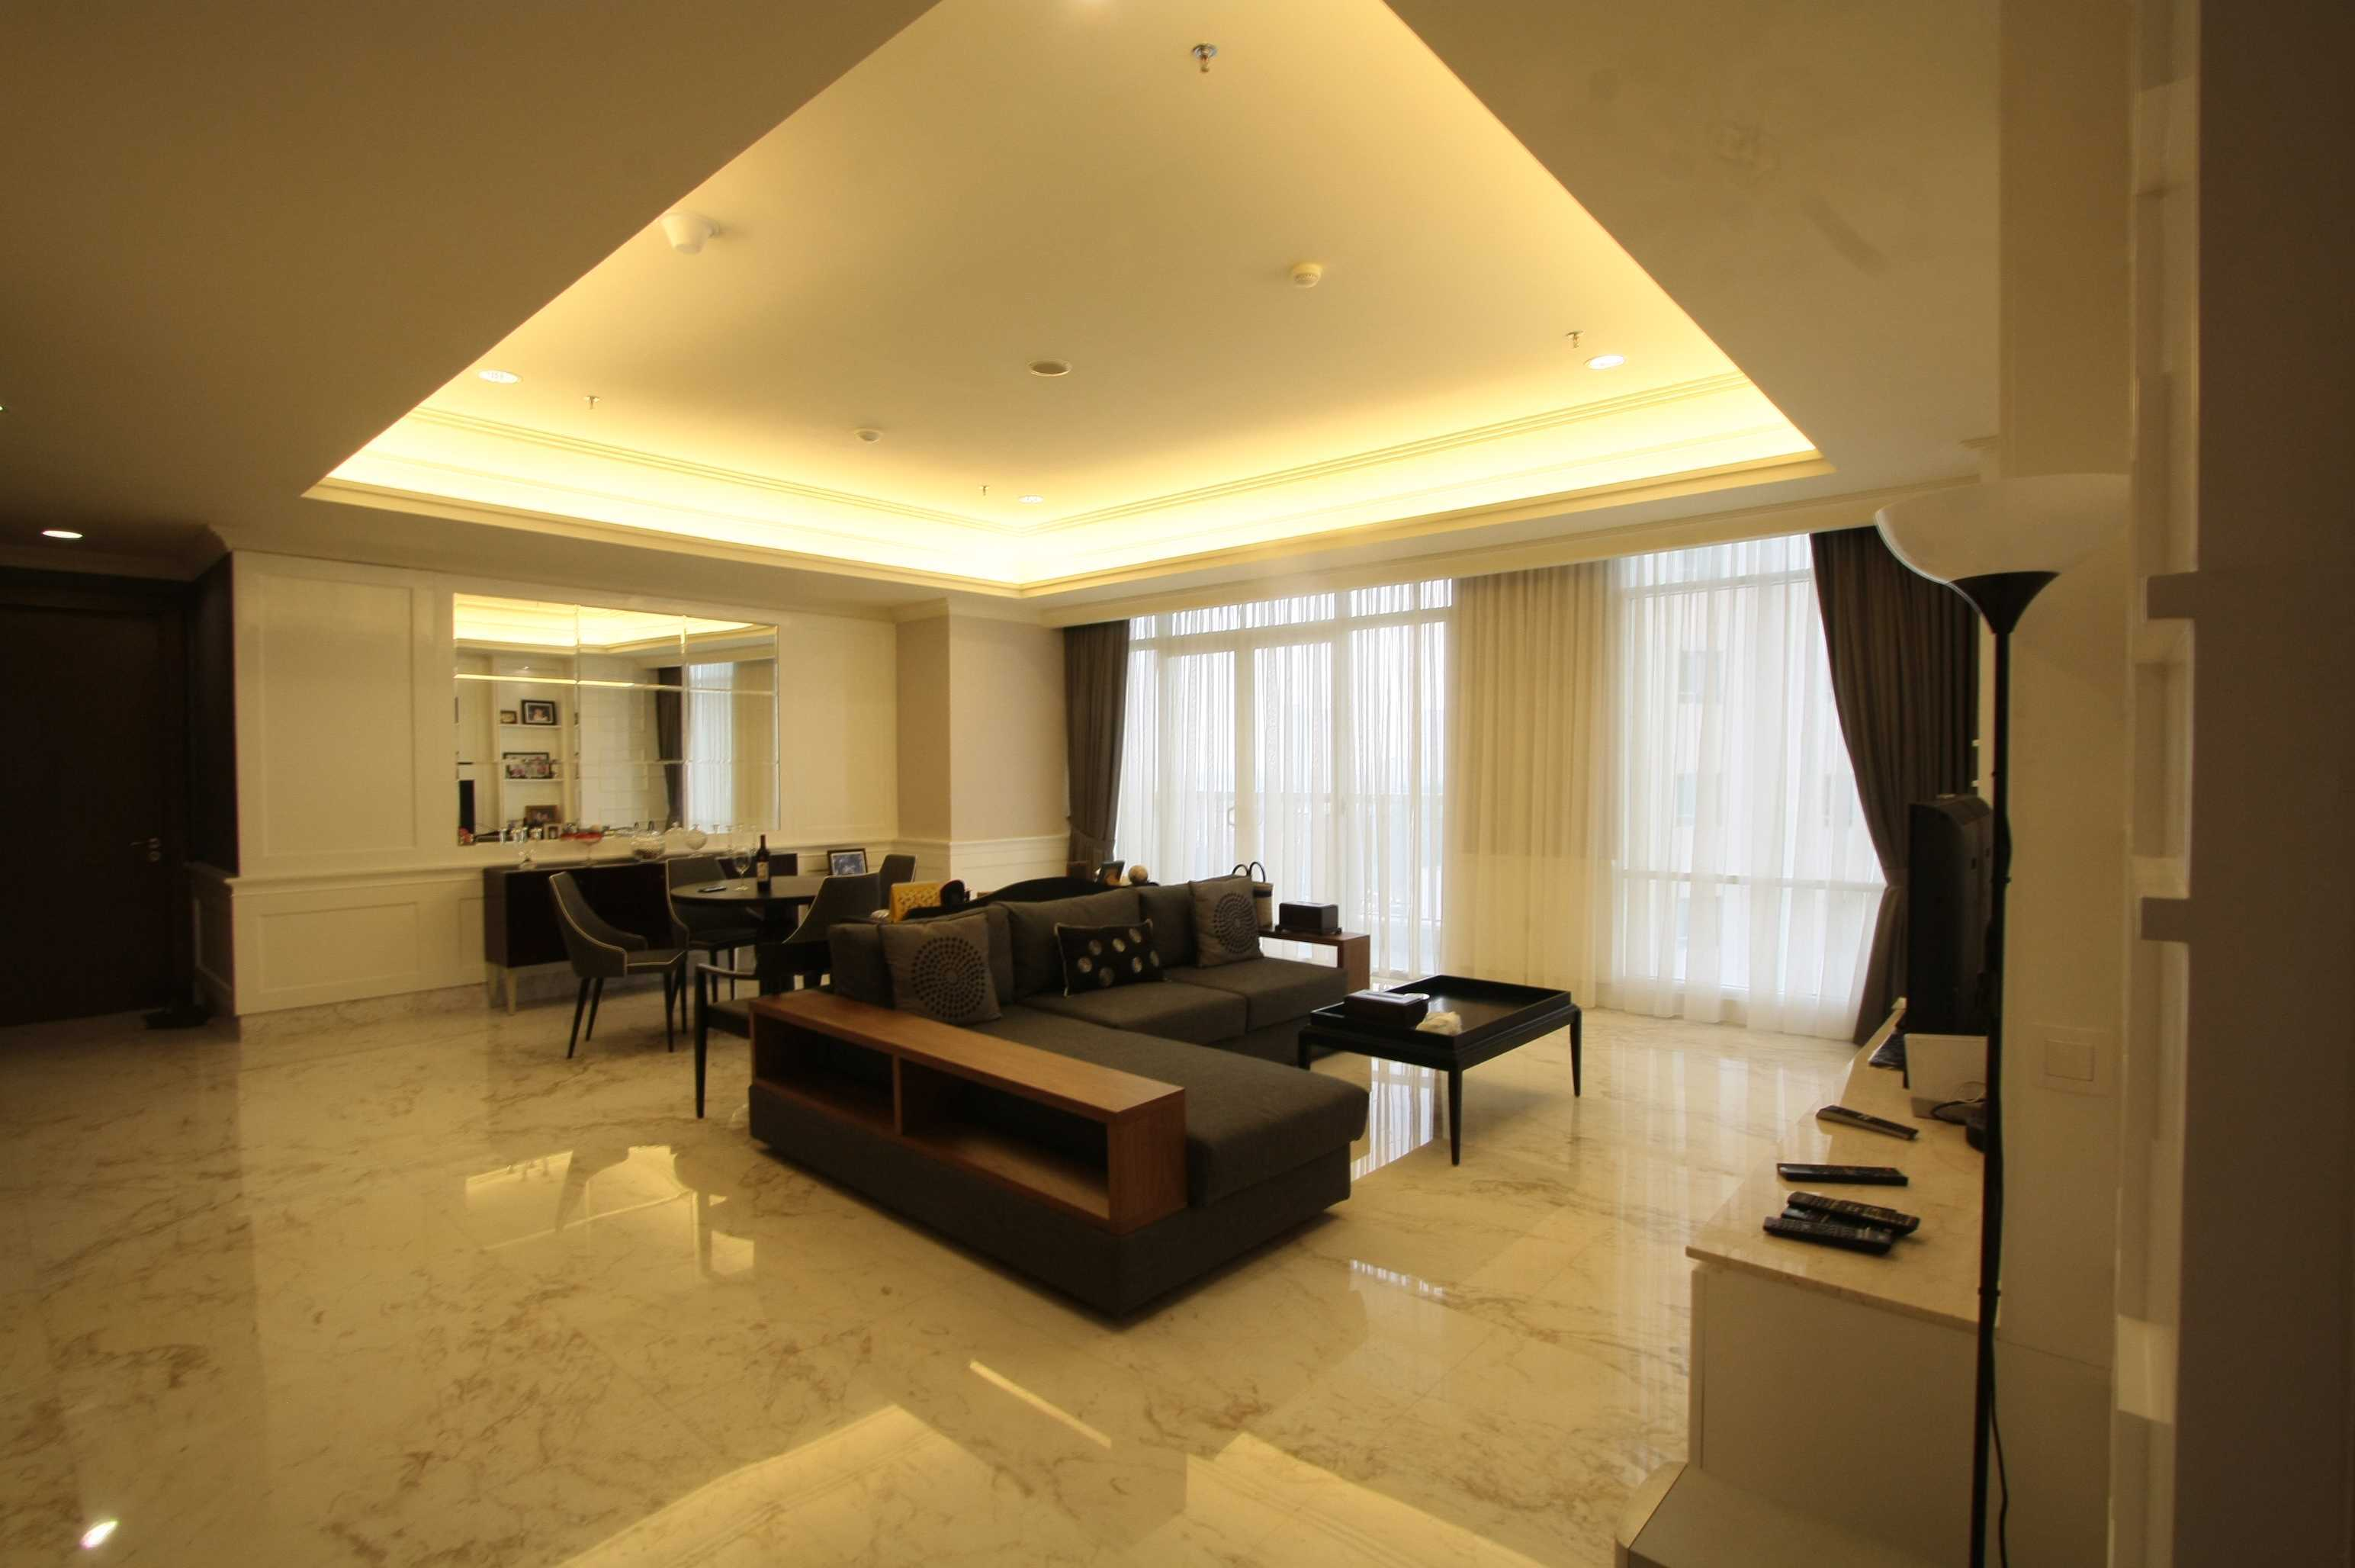 Exxo Interior Executive Suite Master Bedroom Jakarta Jakarta Img9966   28151